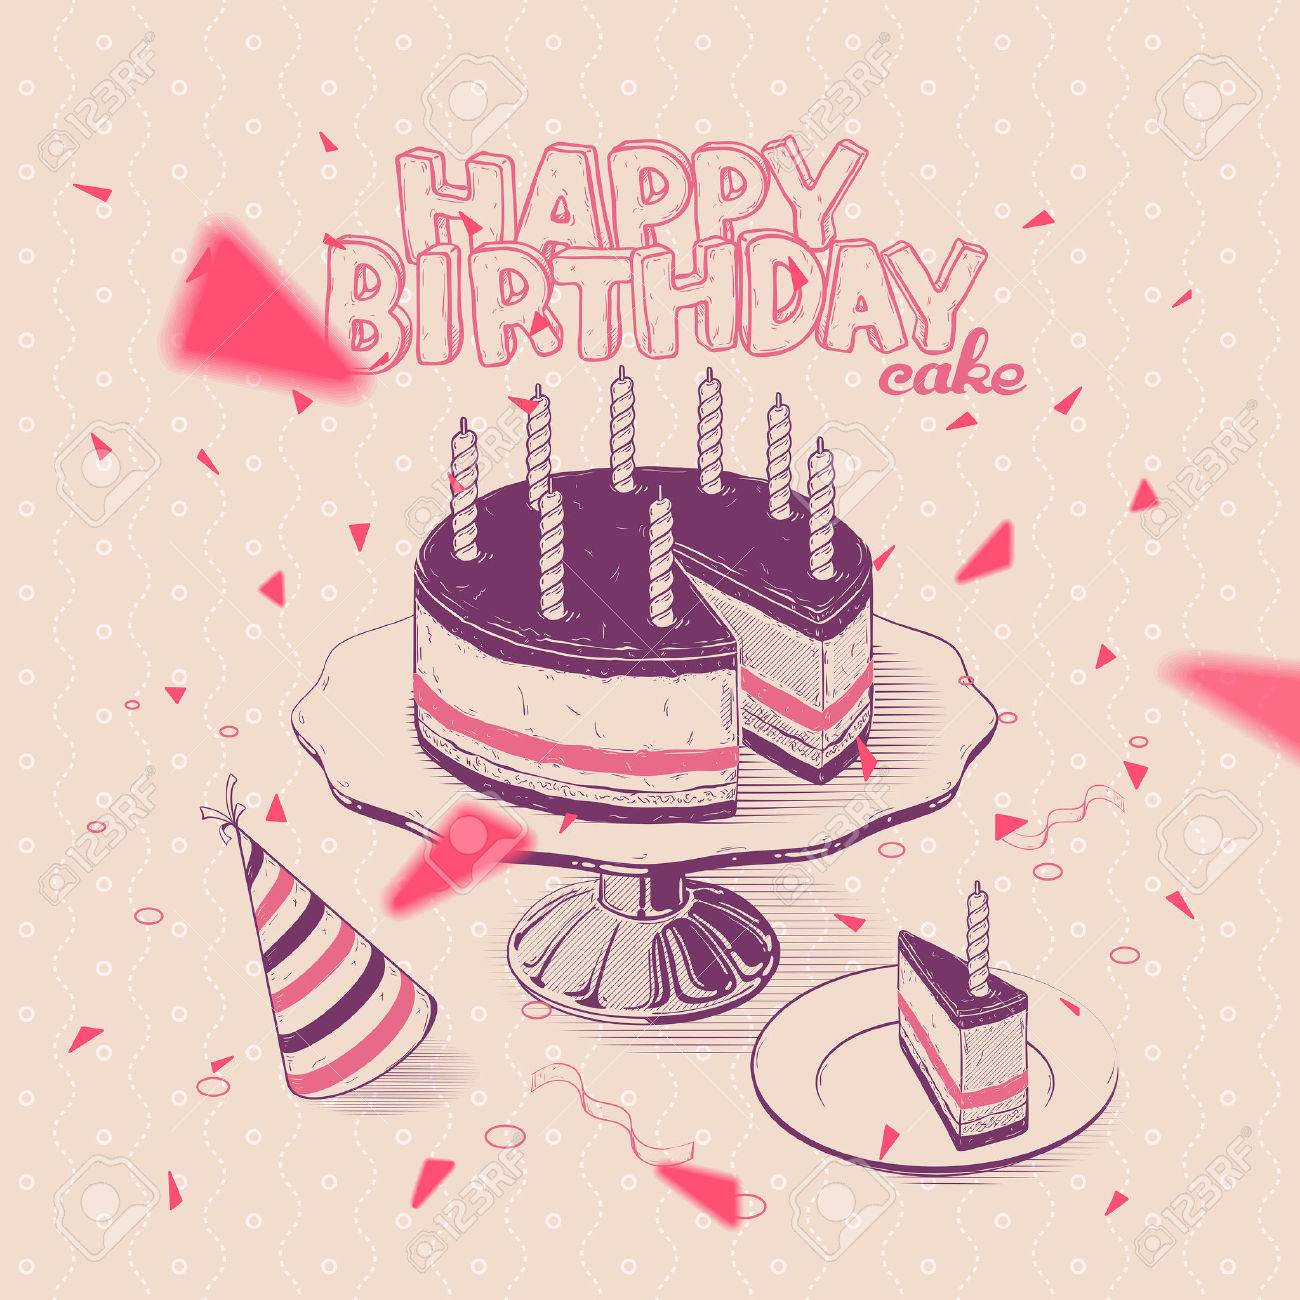 Vector Handdrawn Illustration Of Birthday Cake With Candles Royalty